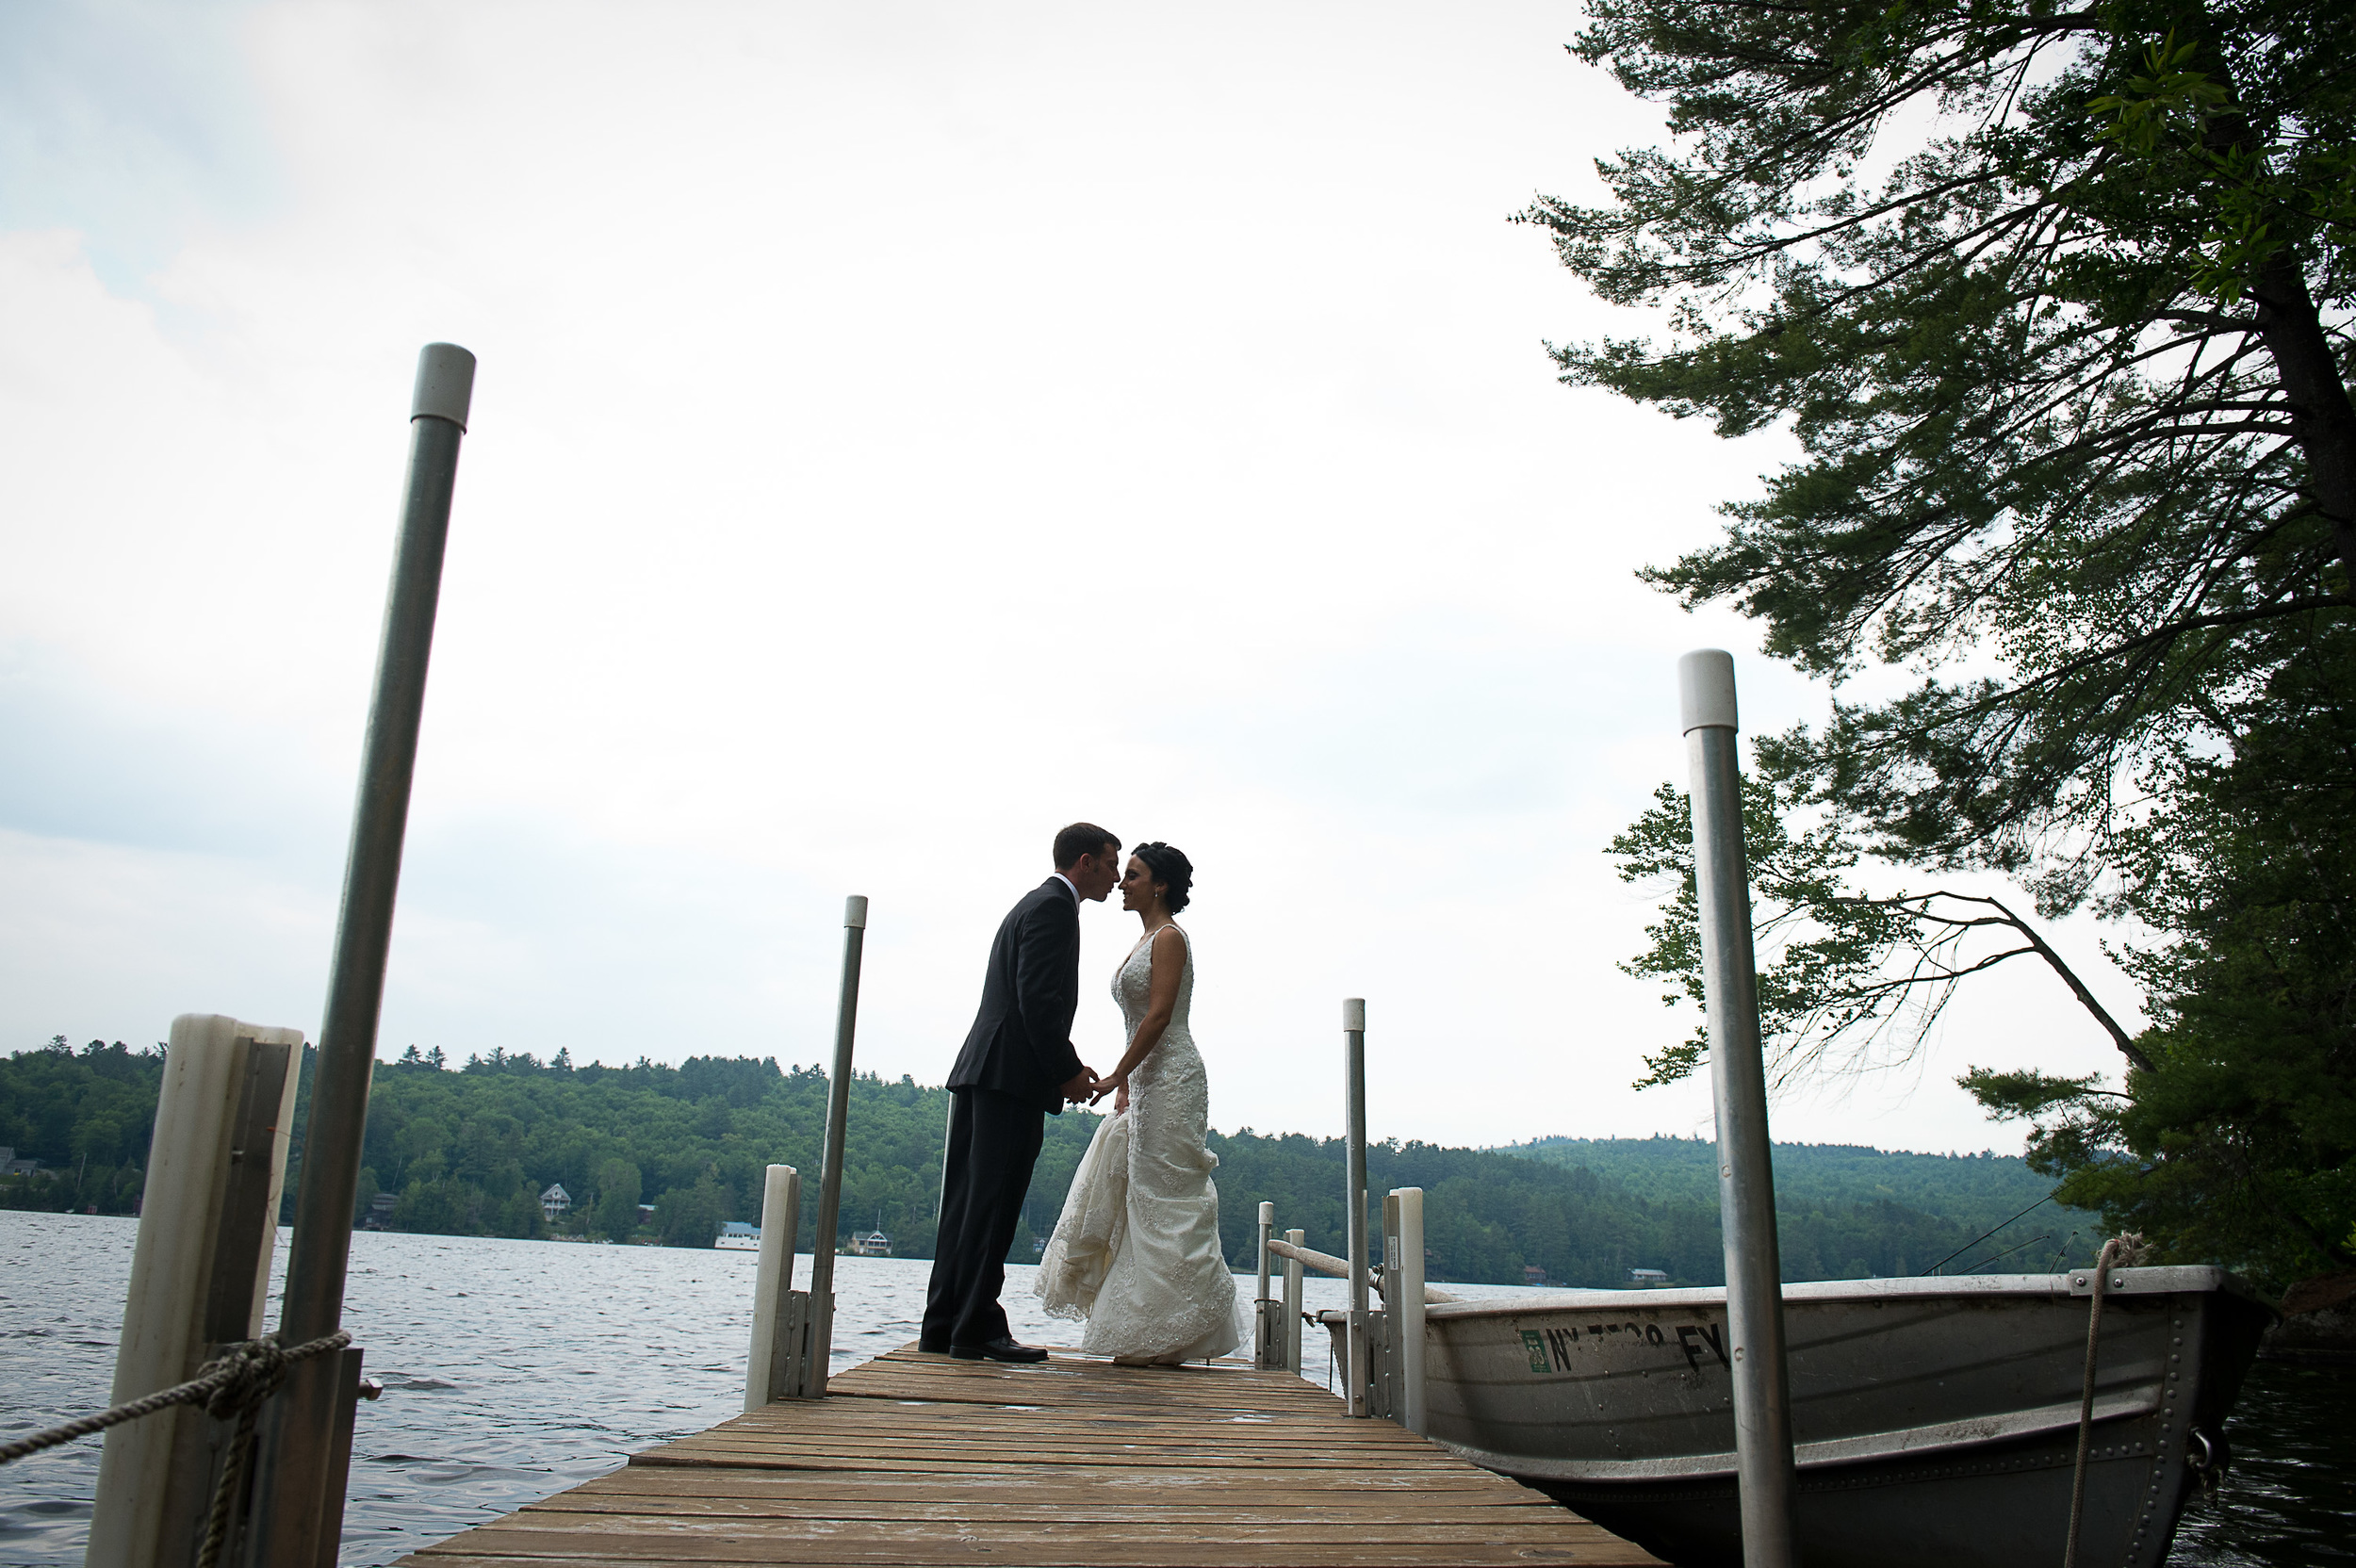 NYC-Wedding-Planner-Andrea-Freeman-Events-Hudson-Valley-Catskills-Private-Estate-1.jpg